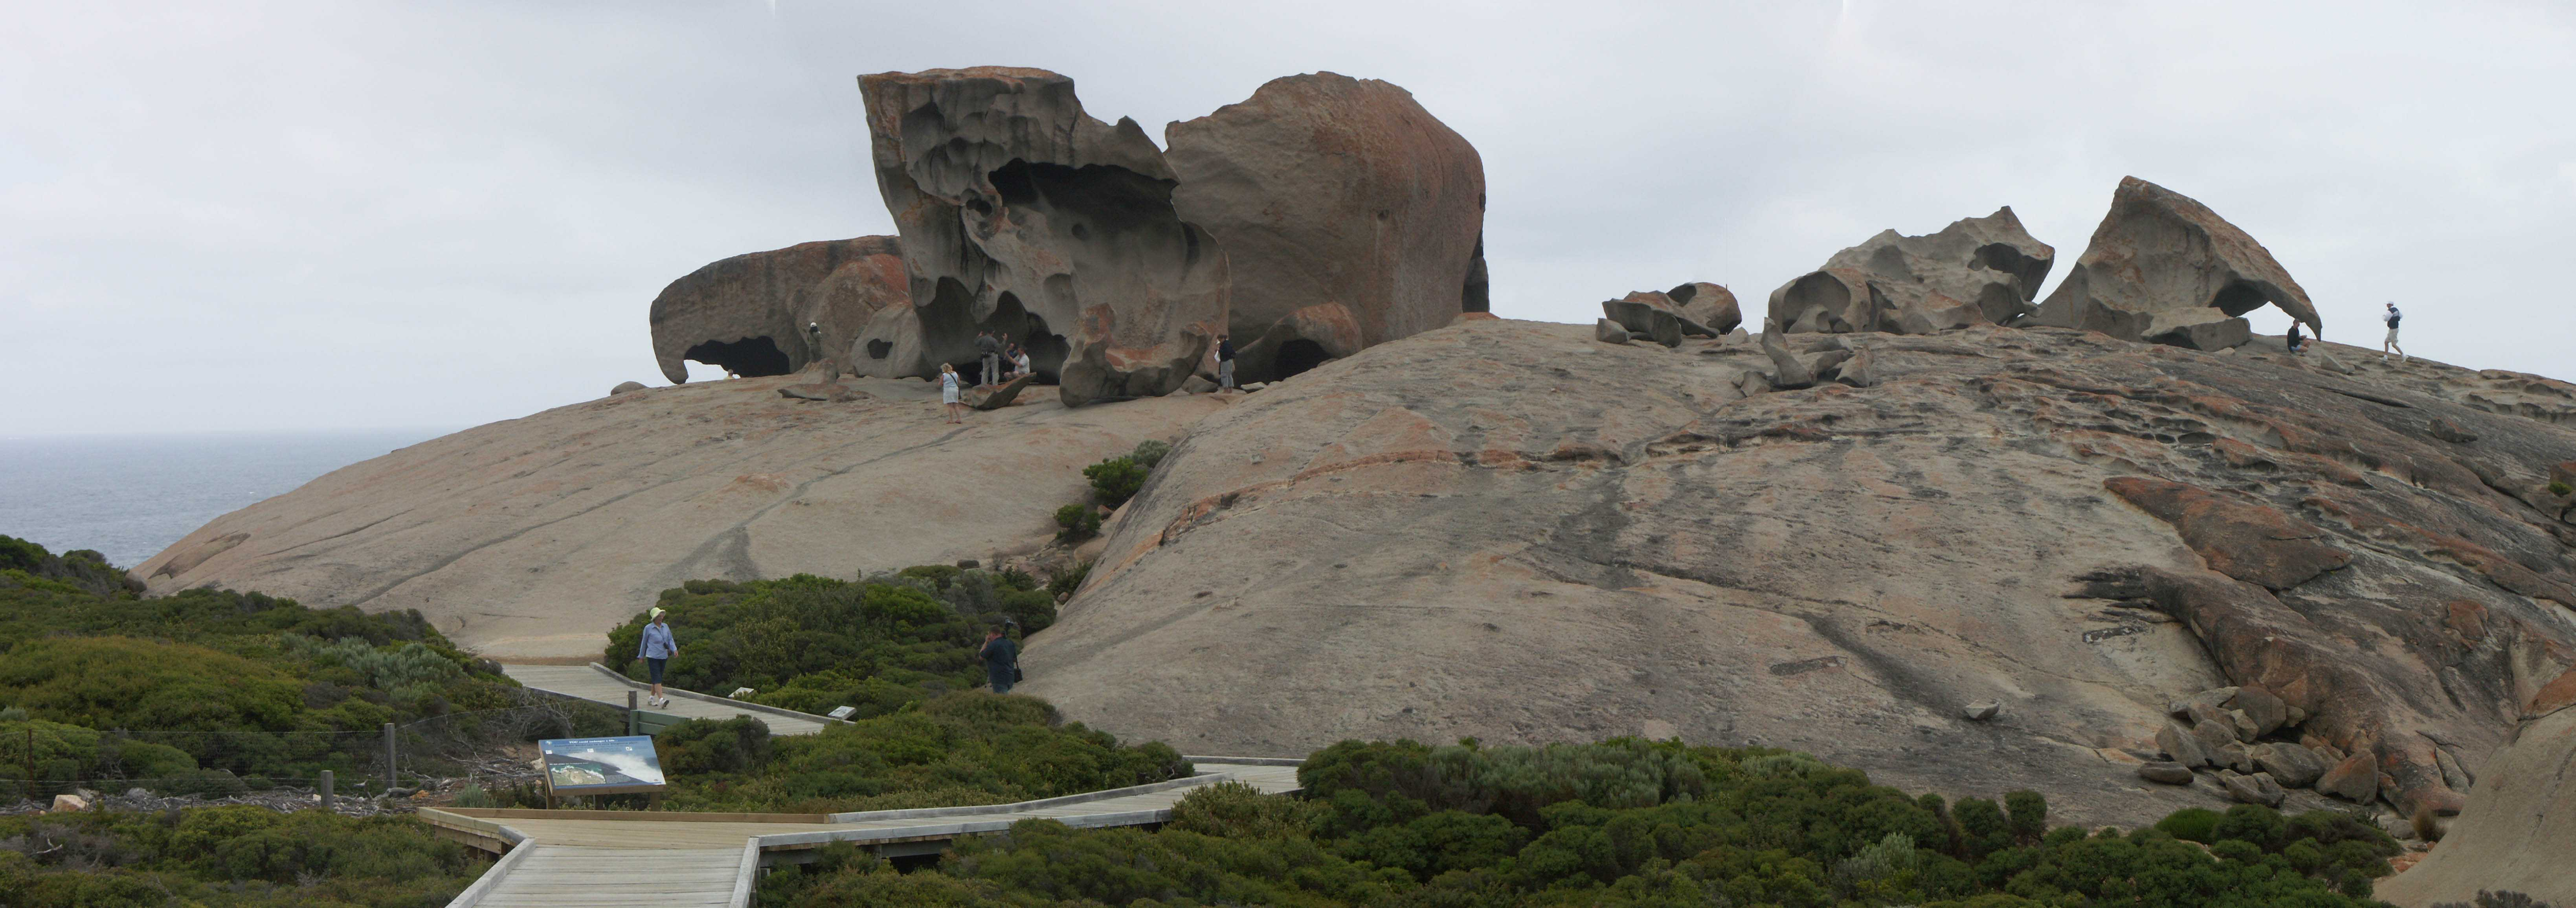 file kangaroo island remarkable rocks australia jpg